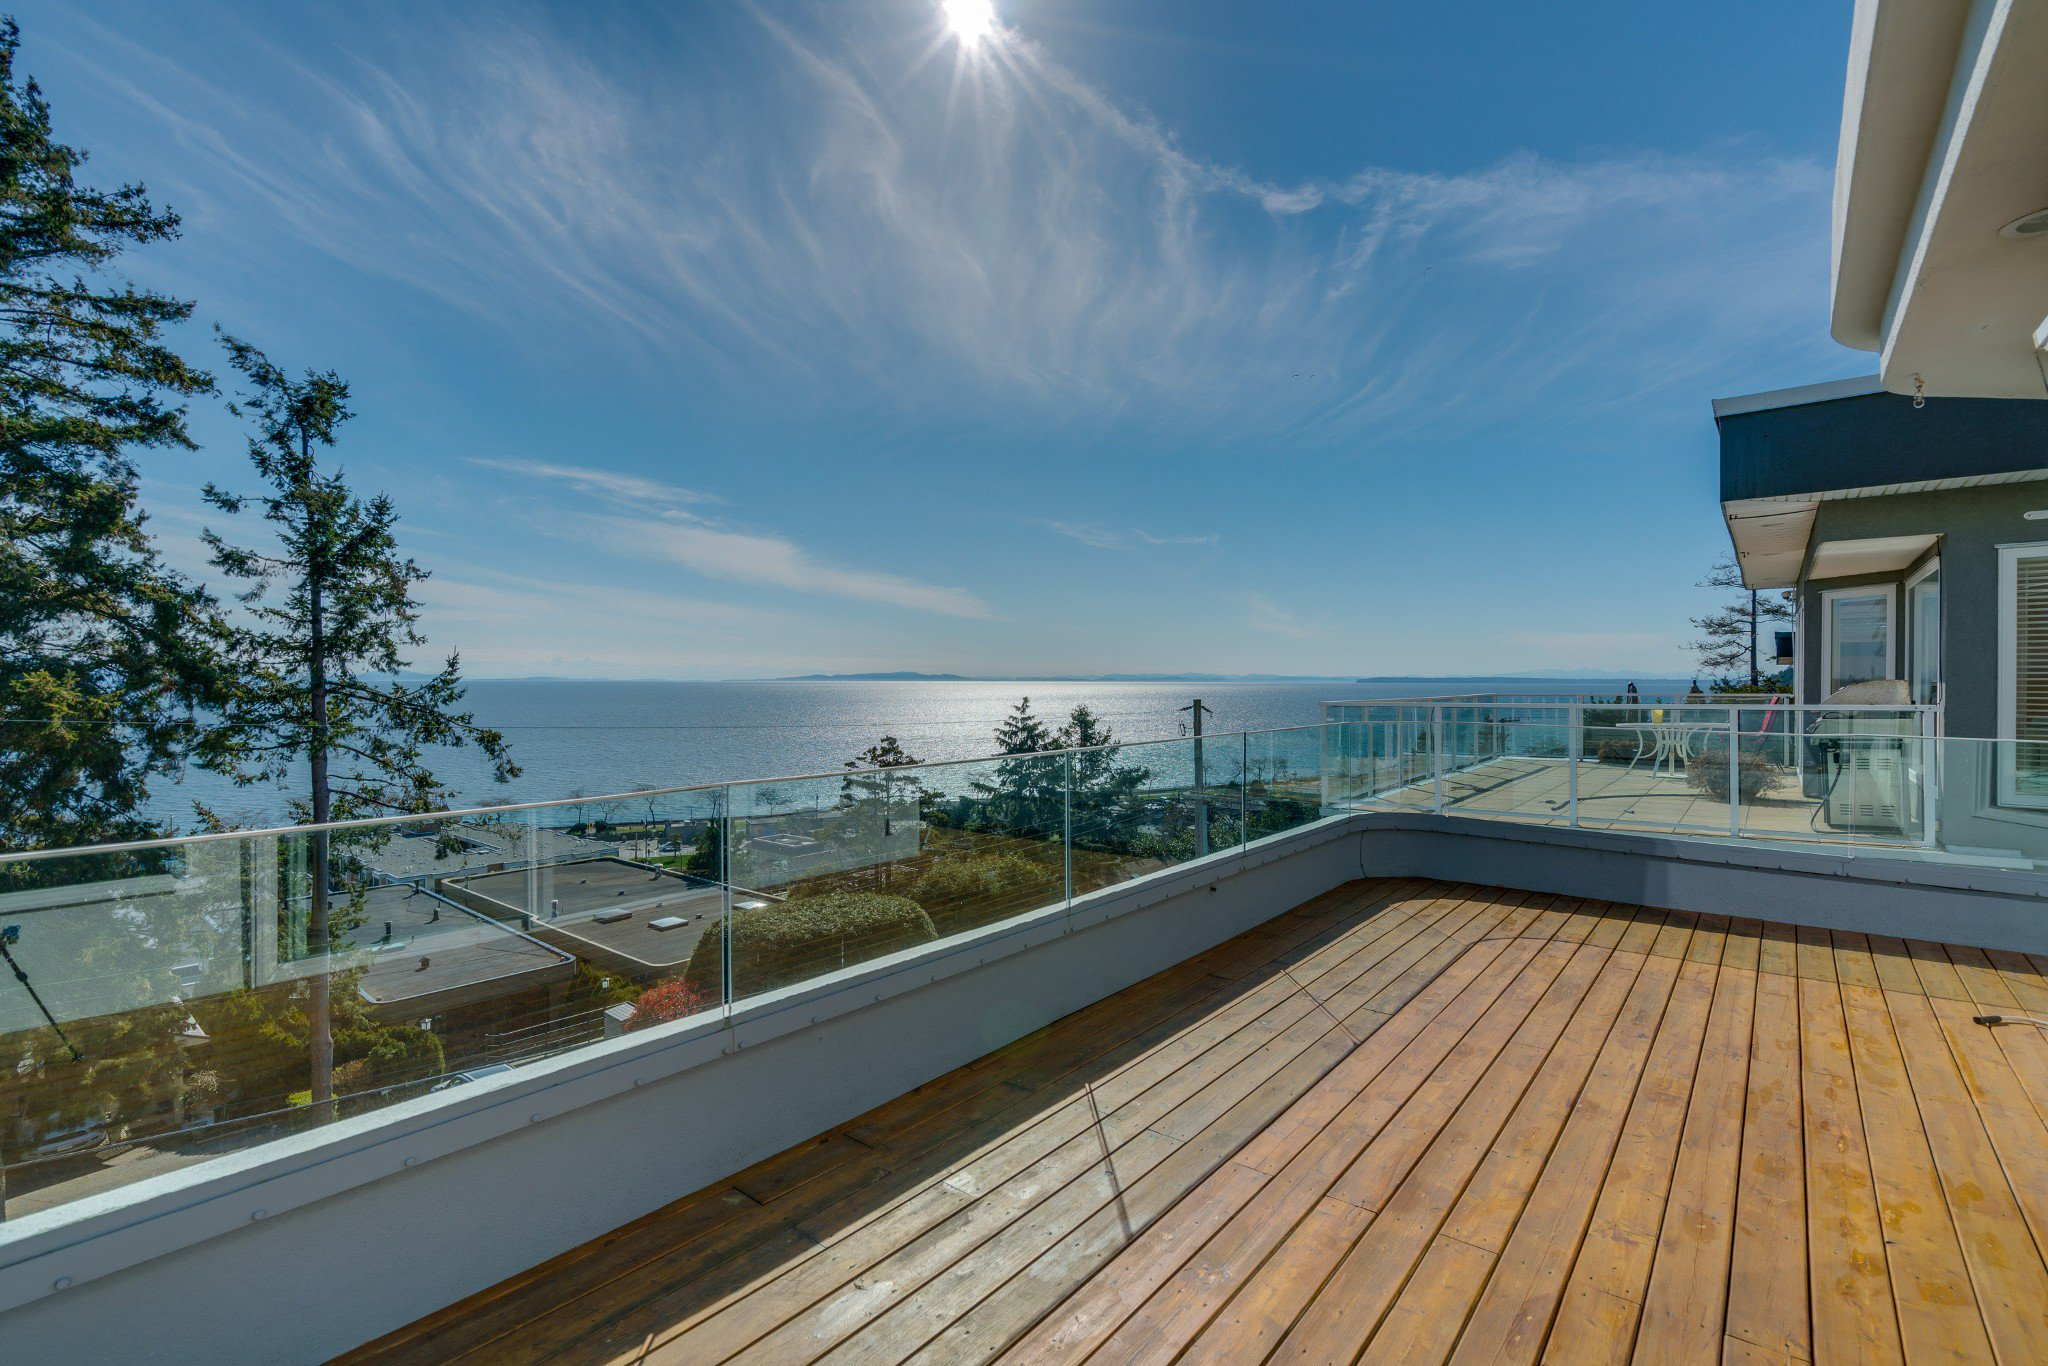 """Main Photo: 14837 PROSPECT Avenue: White Rock House for sale in """"WHITE ROCK"""" (South Surrey White Rock)  : MLS®# R2365629"""